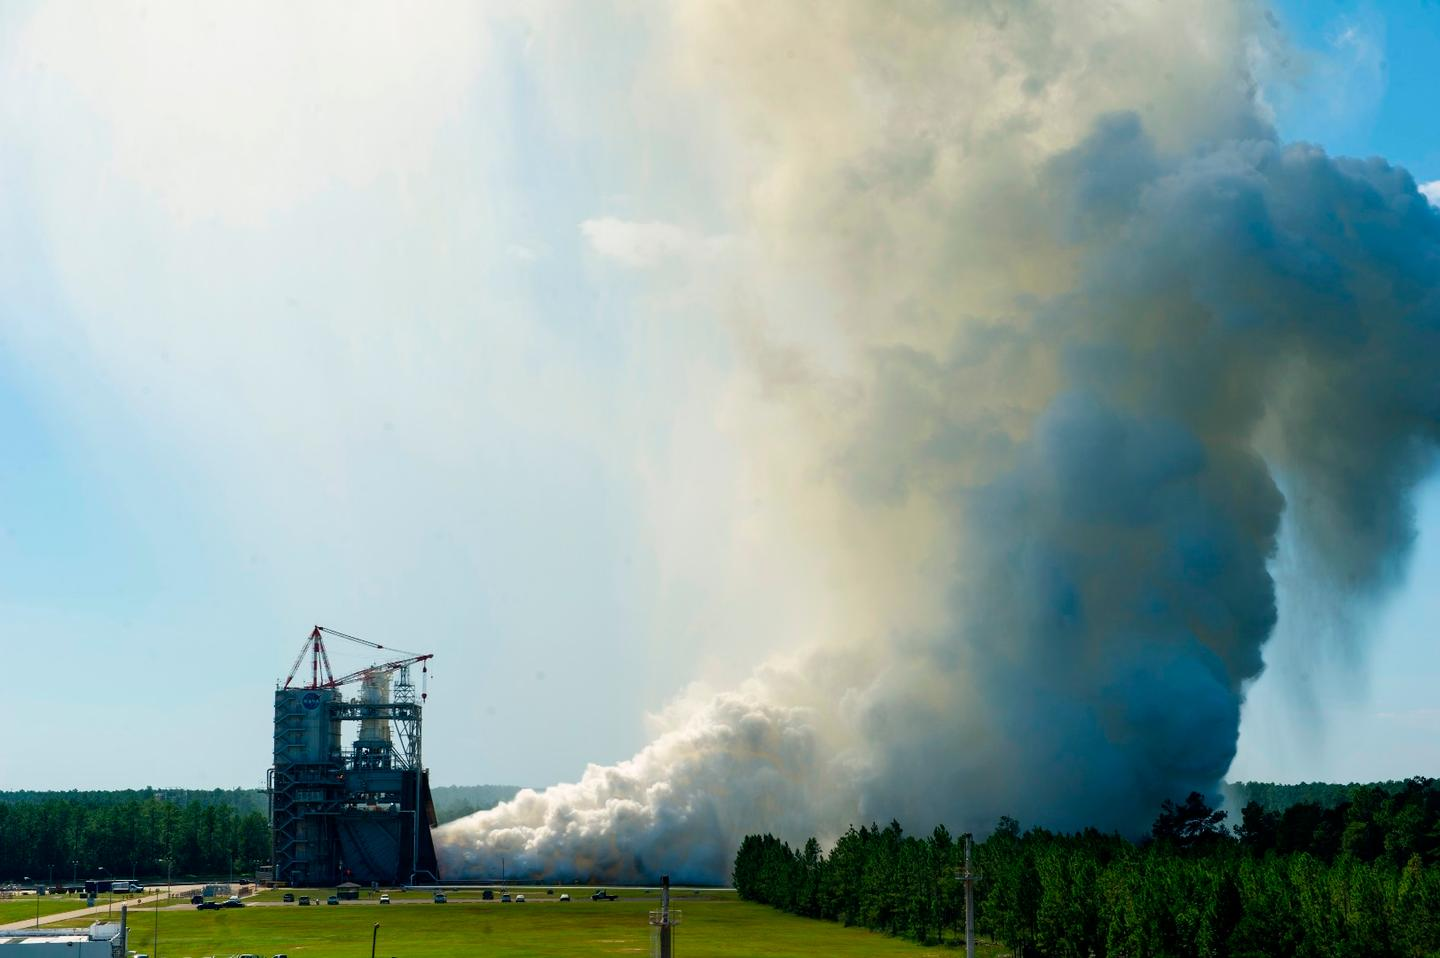 The RS-25 engine fired up for a 535-second test August 27, 2015 at NASA's Stennis Space Center near Bay St. Louis, Mississippi